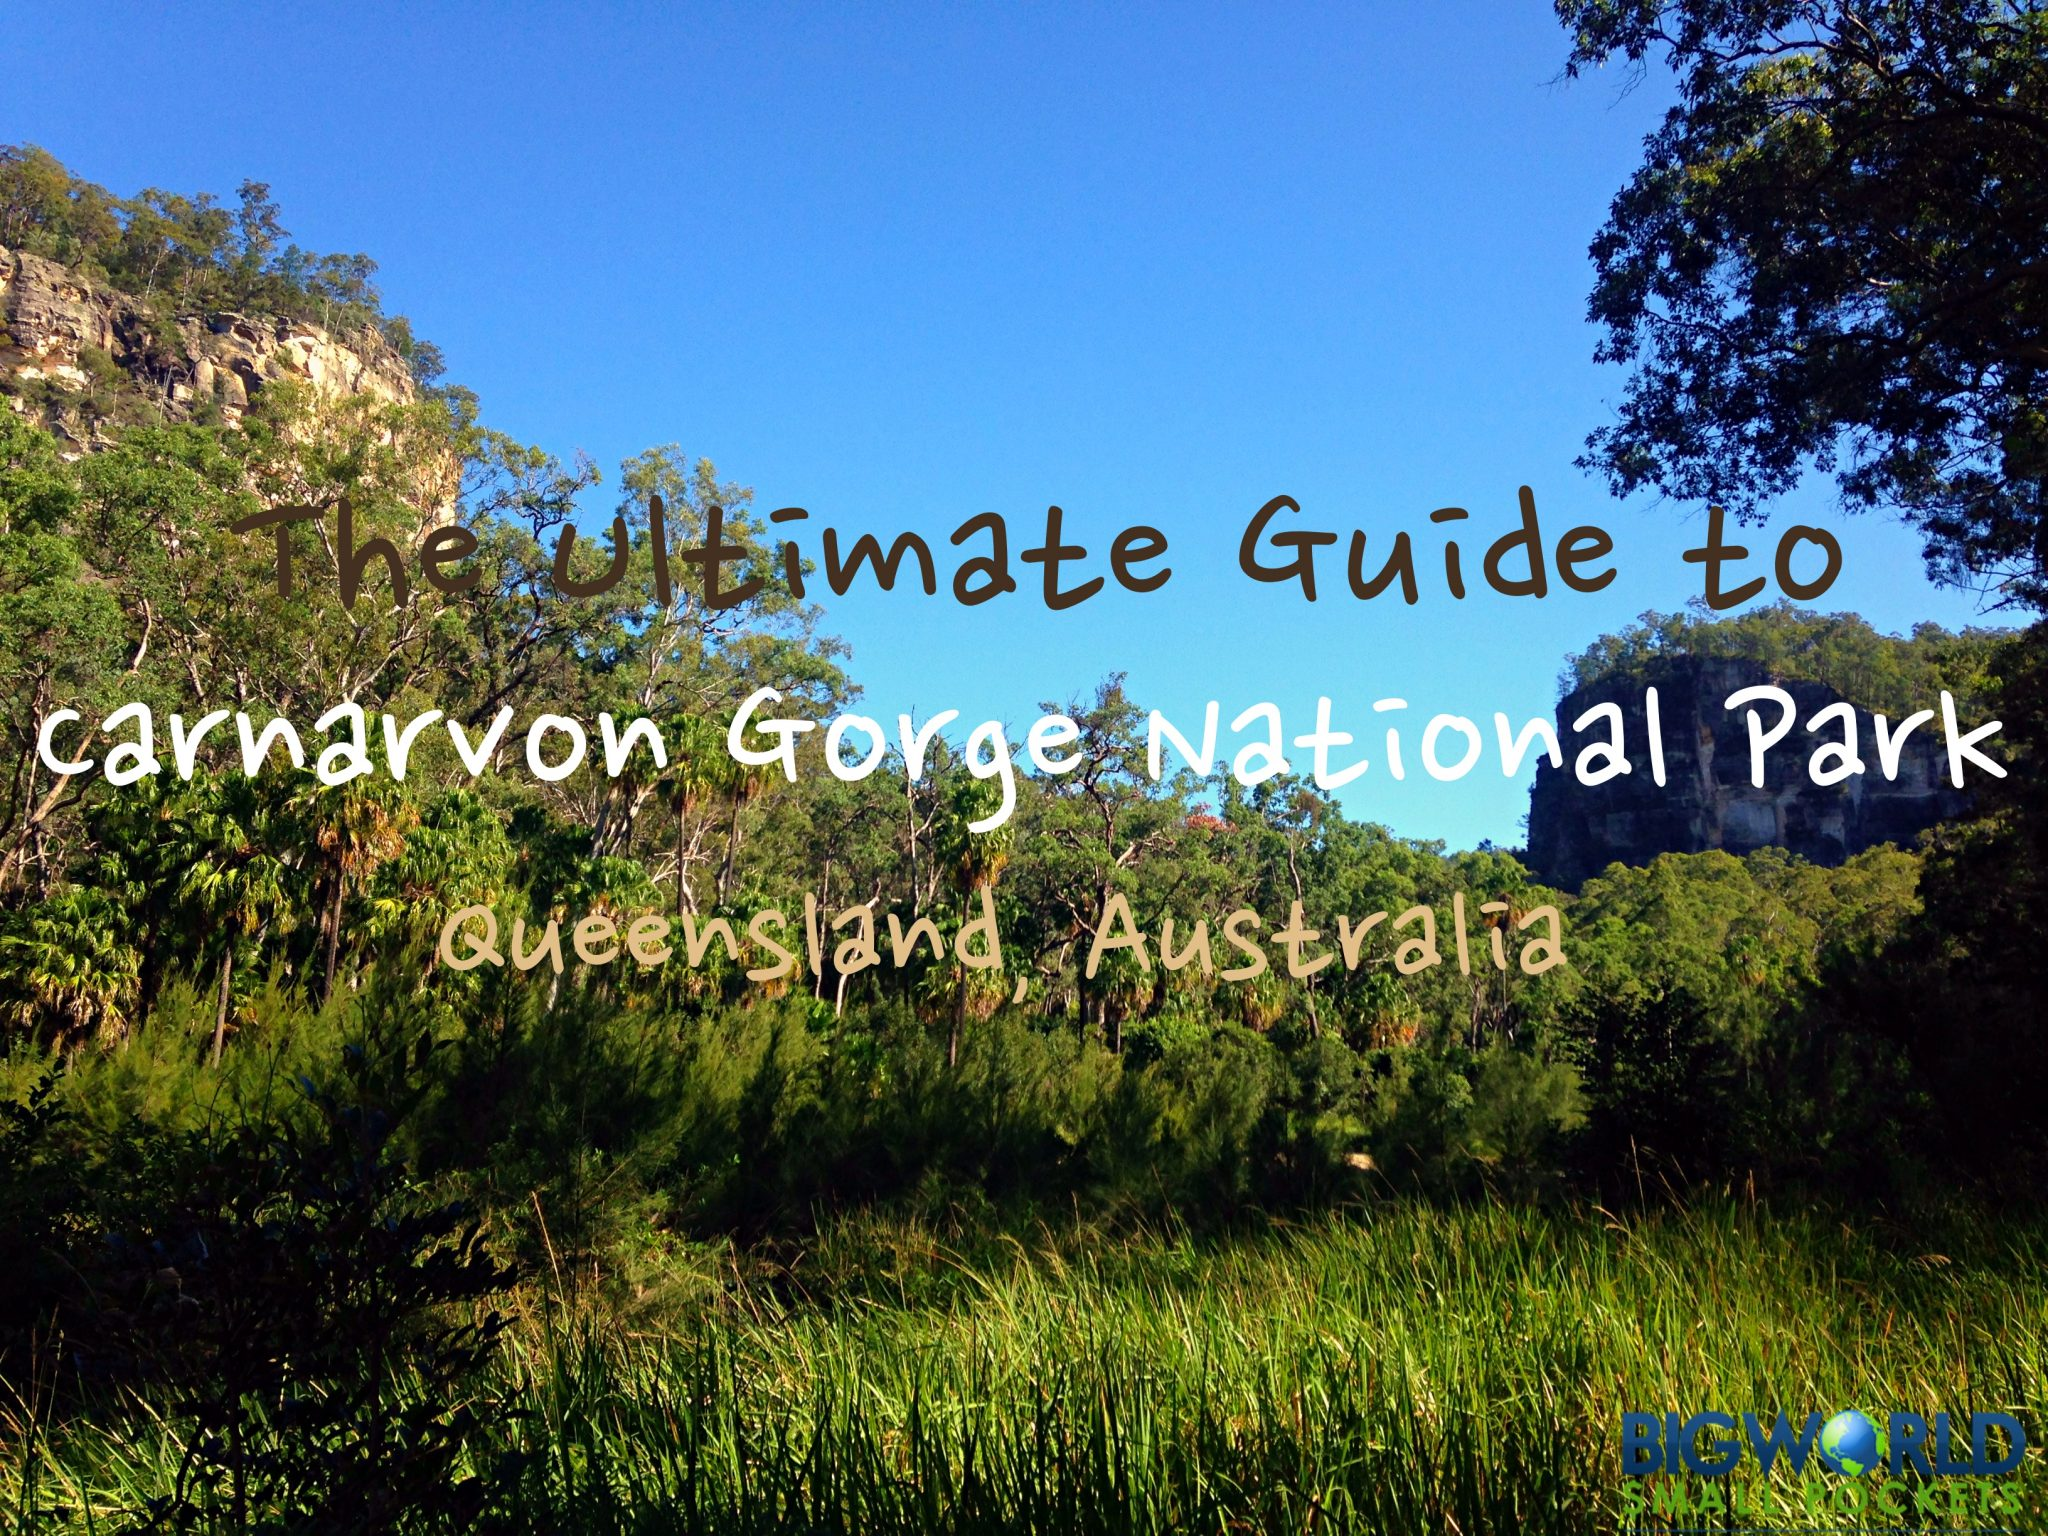 The Ultimate Guide to Carnarvon Gorge